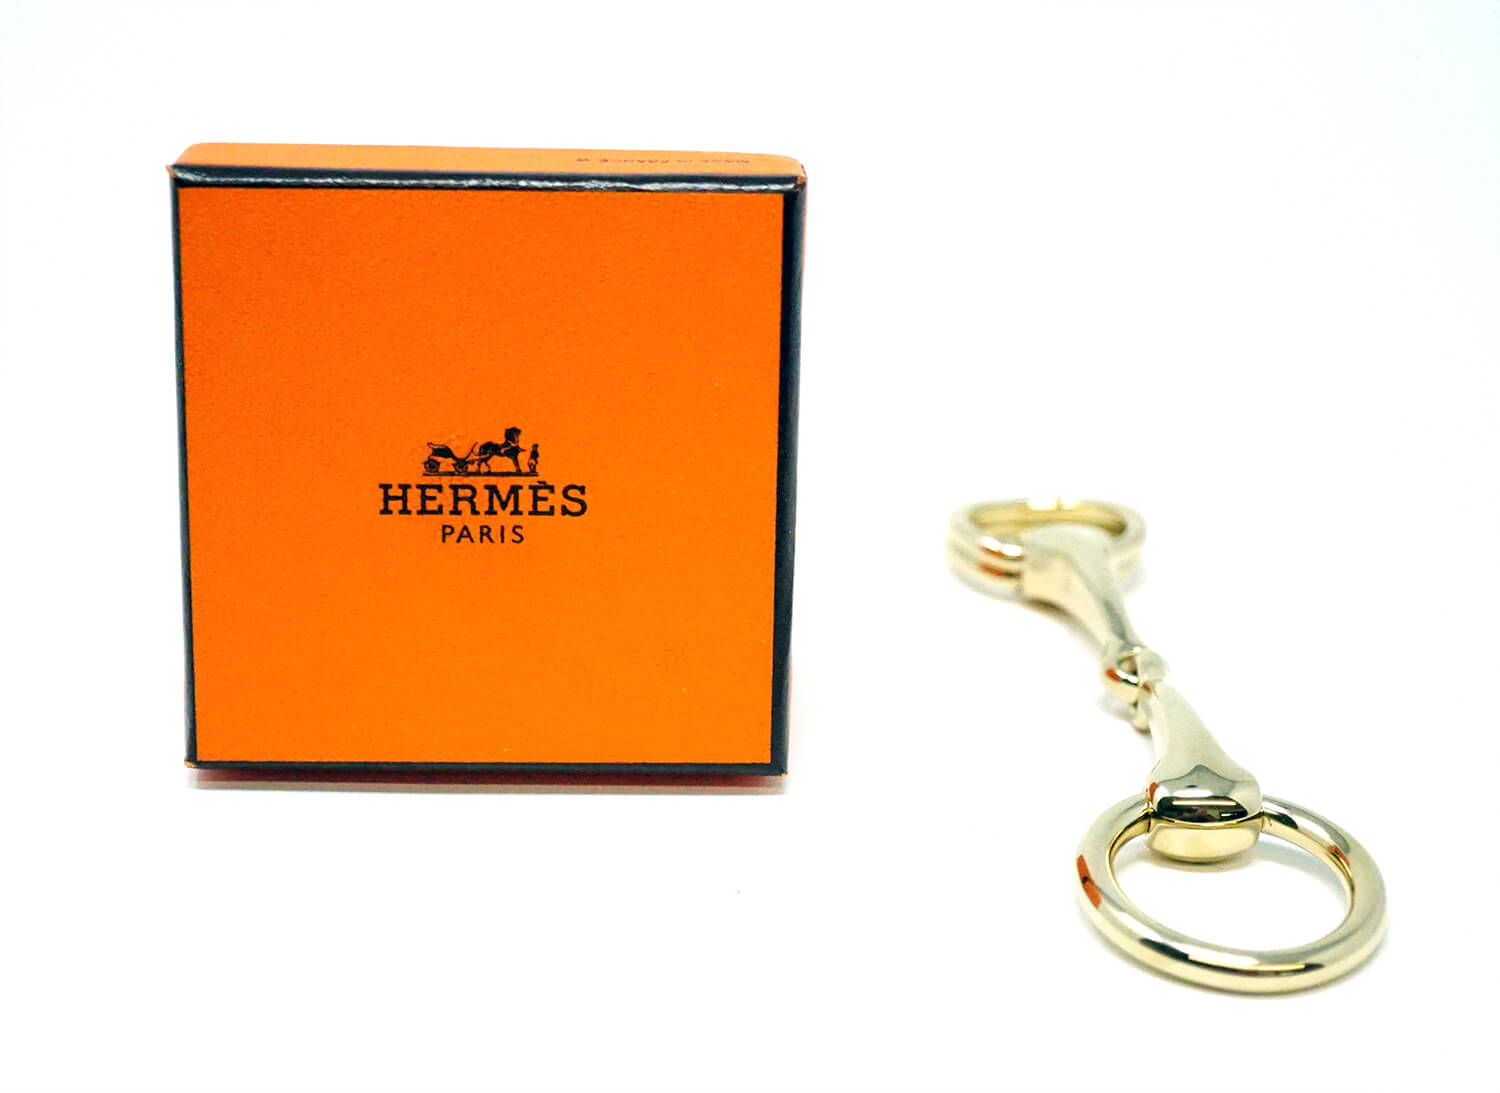 Hermes Paris Permabrass Scarf Ring